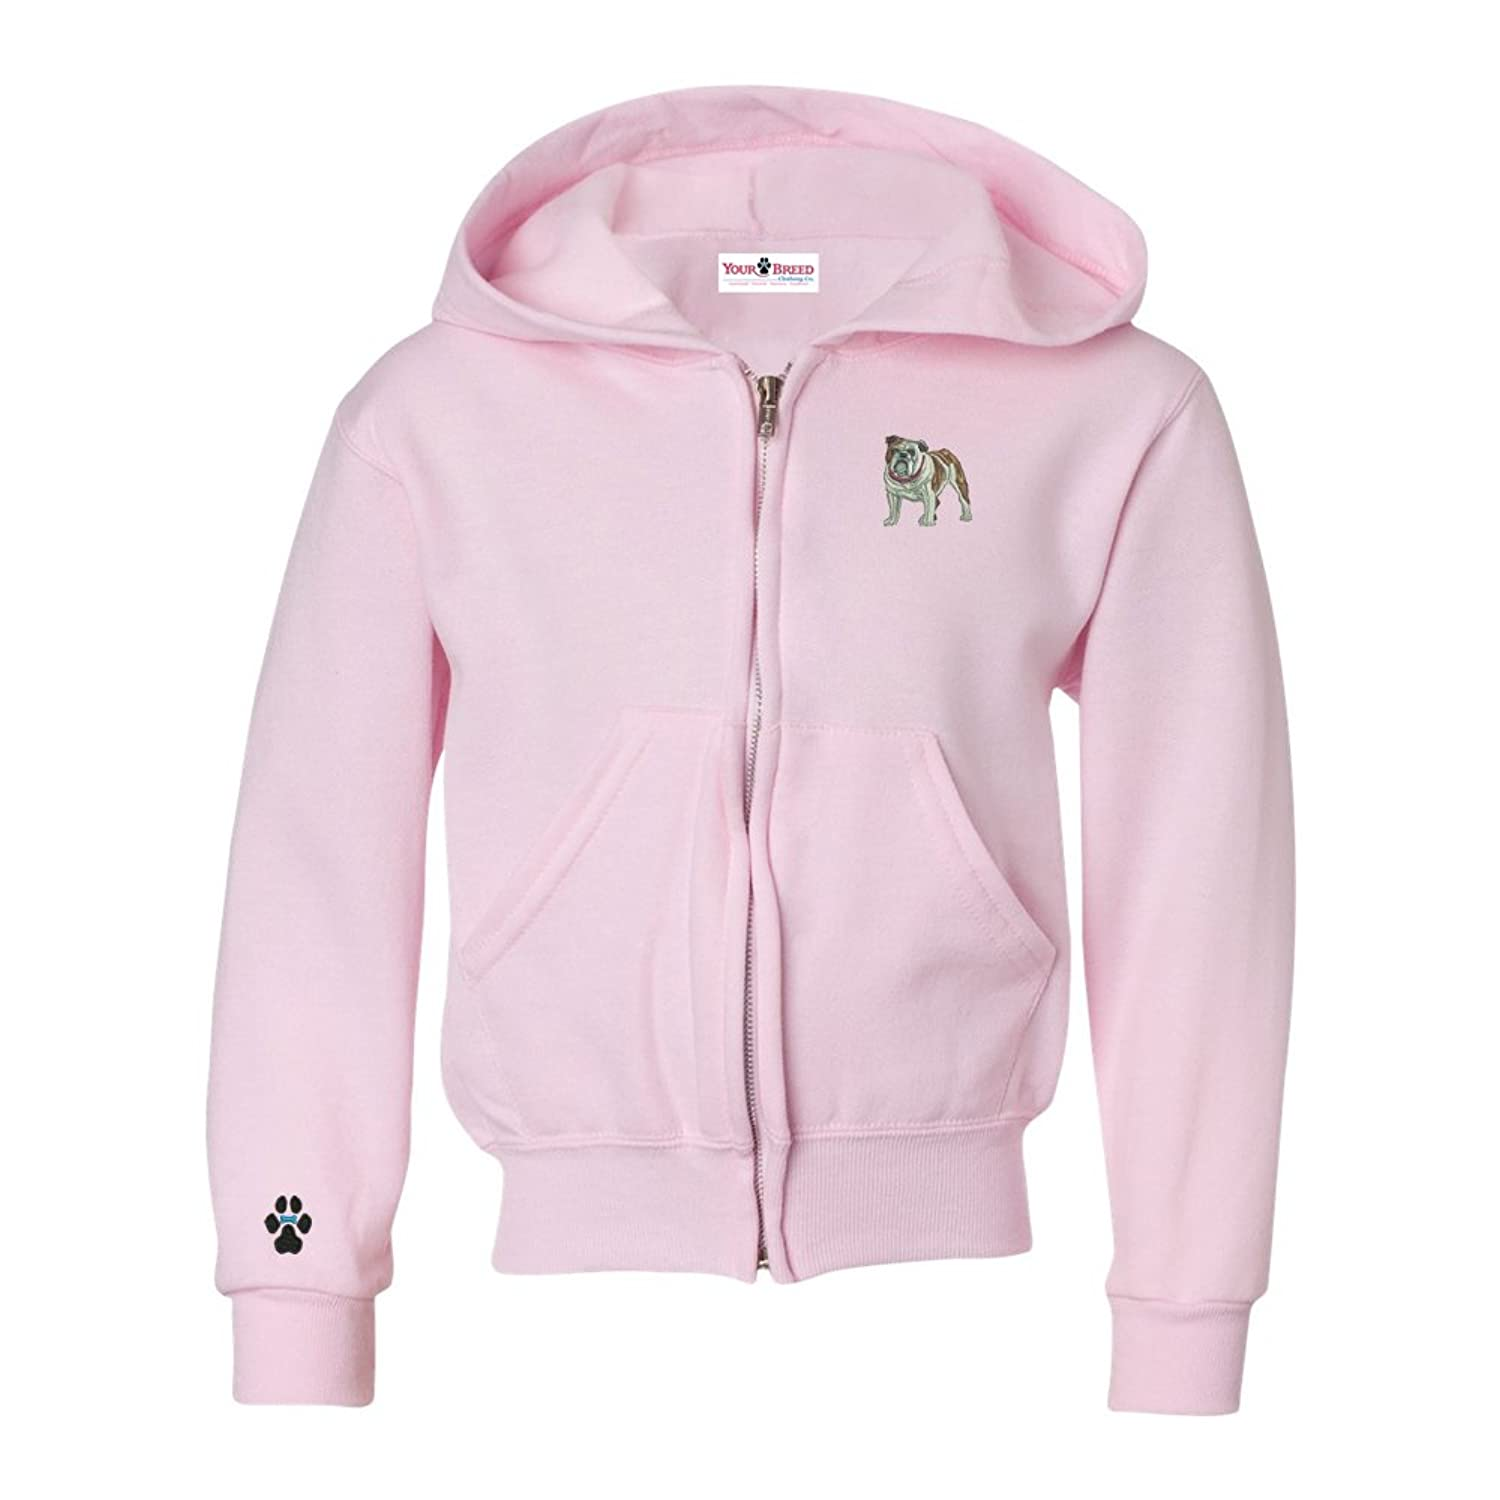 DTMN7 Rabbit New Style Printed Crew Neck Hoodie For Teens Spring Autumn Winter